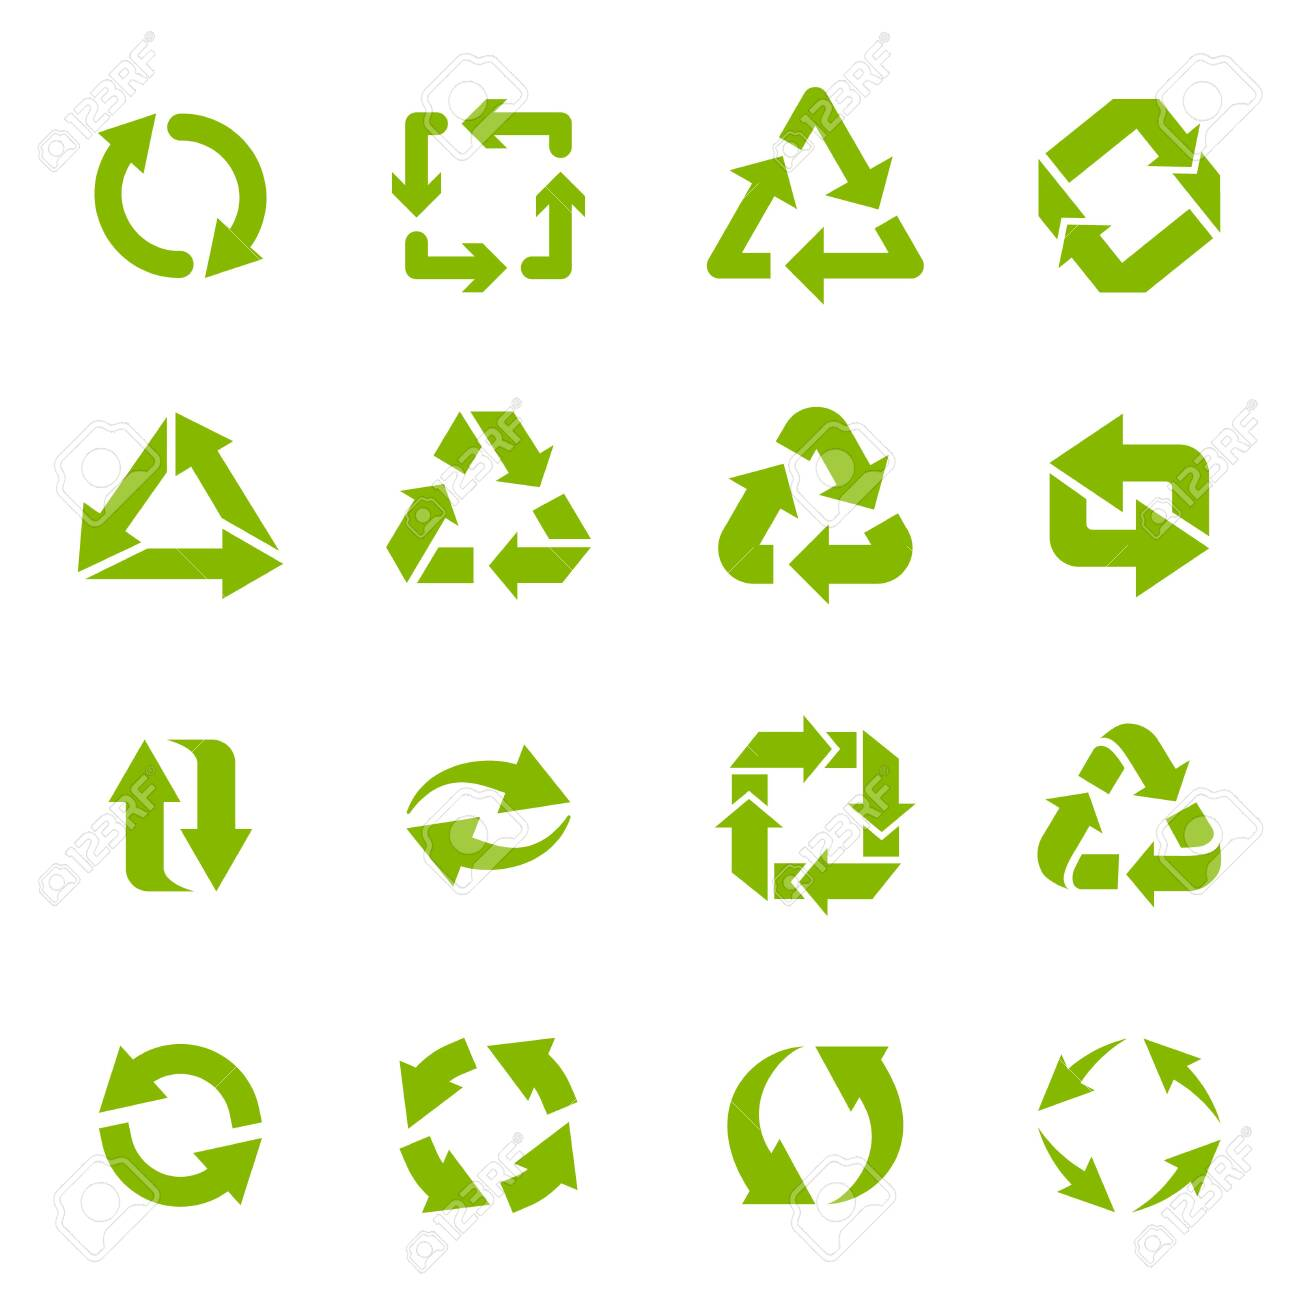 Recycle arrows. Garbage circular, triangle and square recycling icons, eco protection elements and recycled eco sign vector isolated icons set. Waste disposal alternative. Sustainable resource use - 137850744